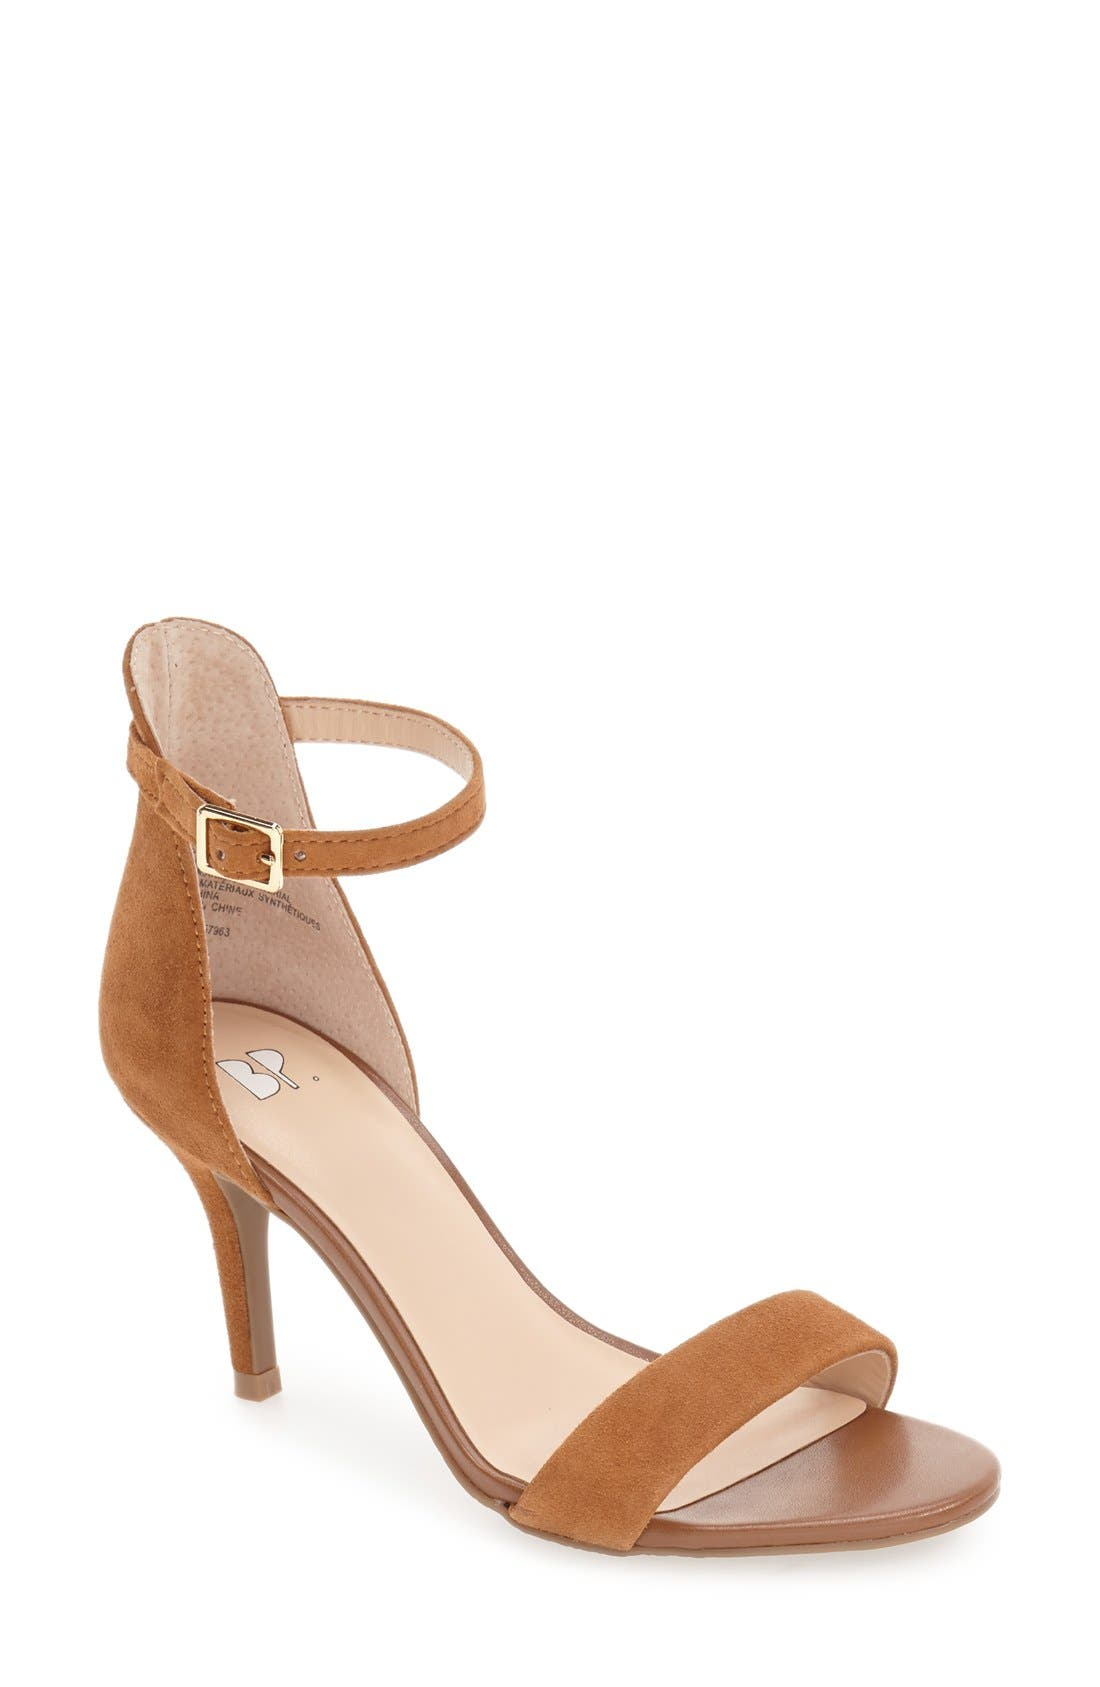 'Luminate' Open Toe Dress Sandal,                             Main thumbnail 27, color,